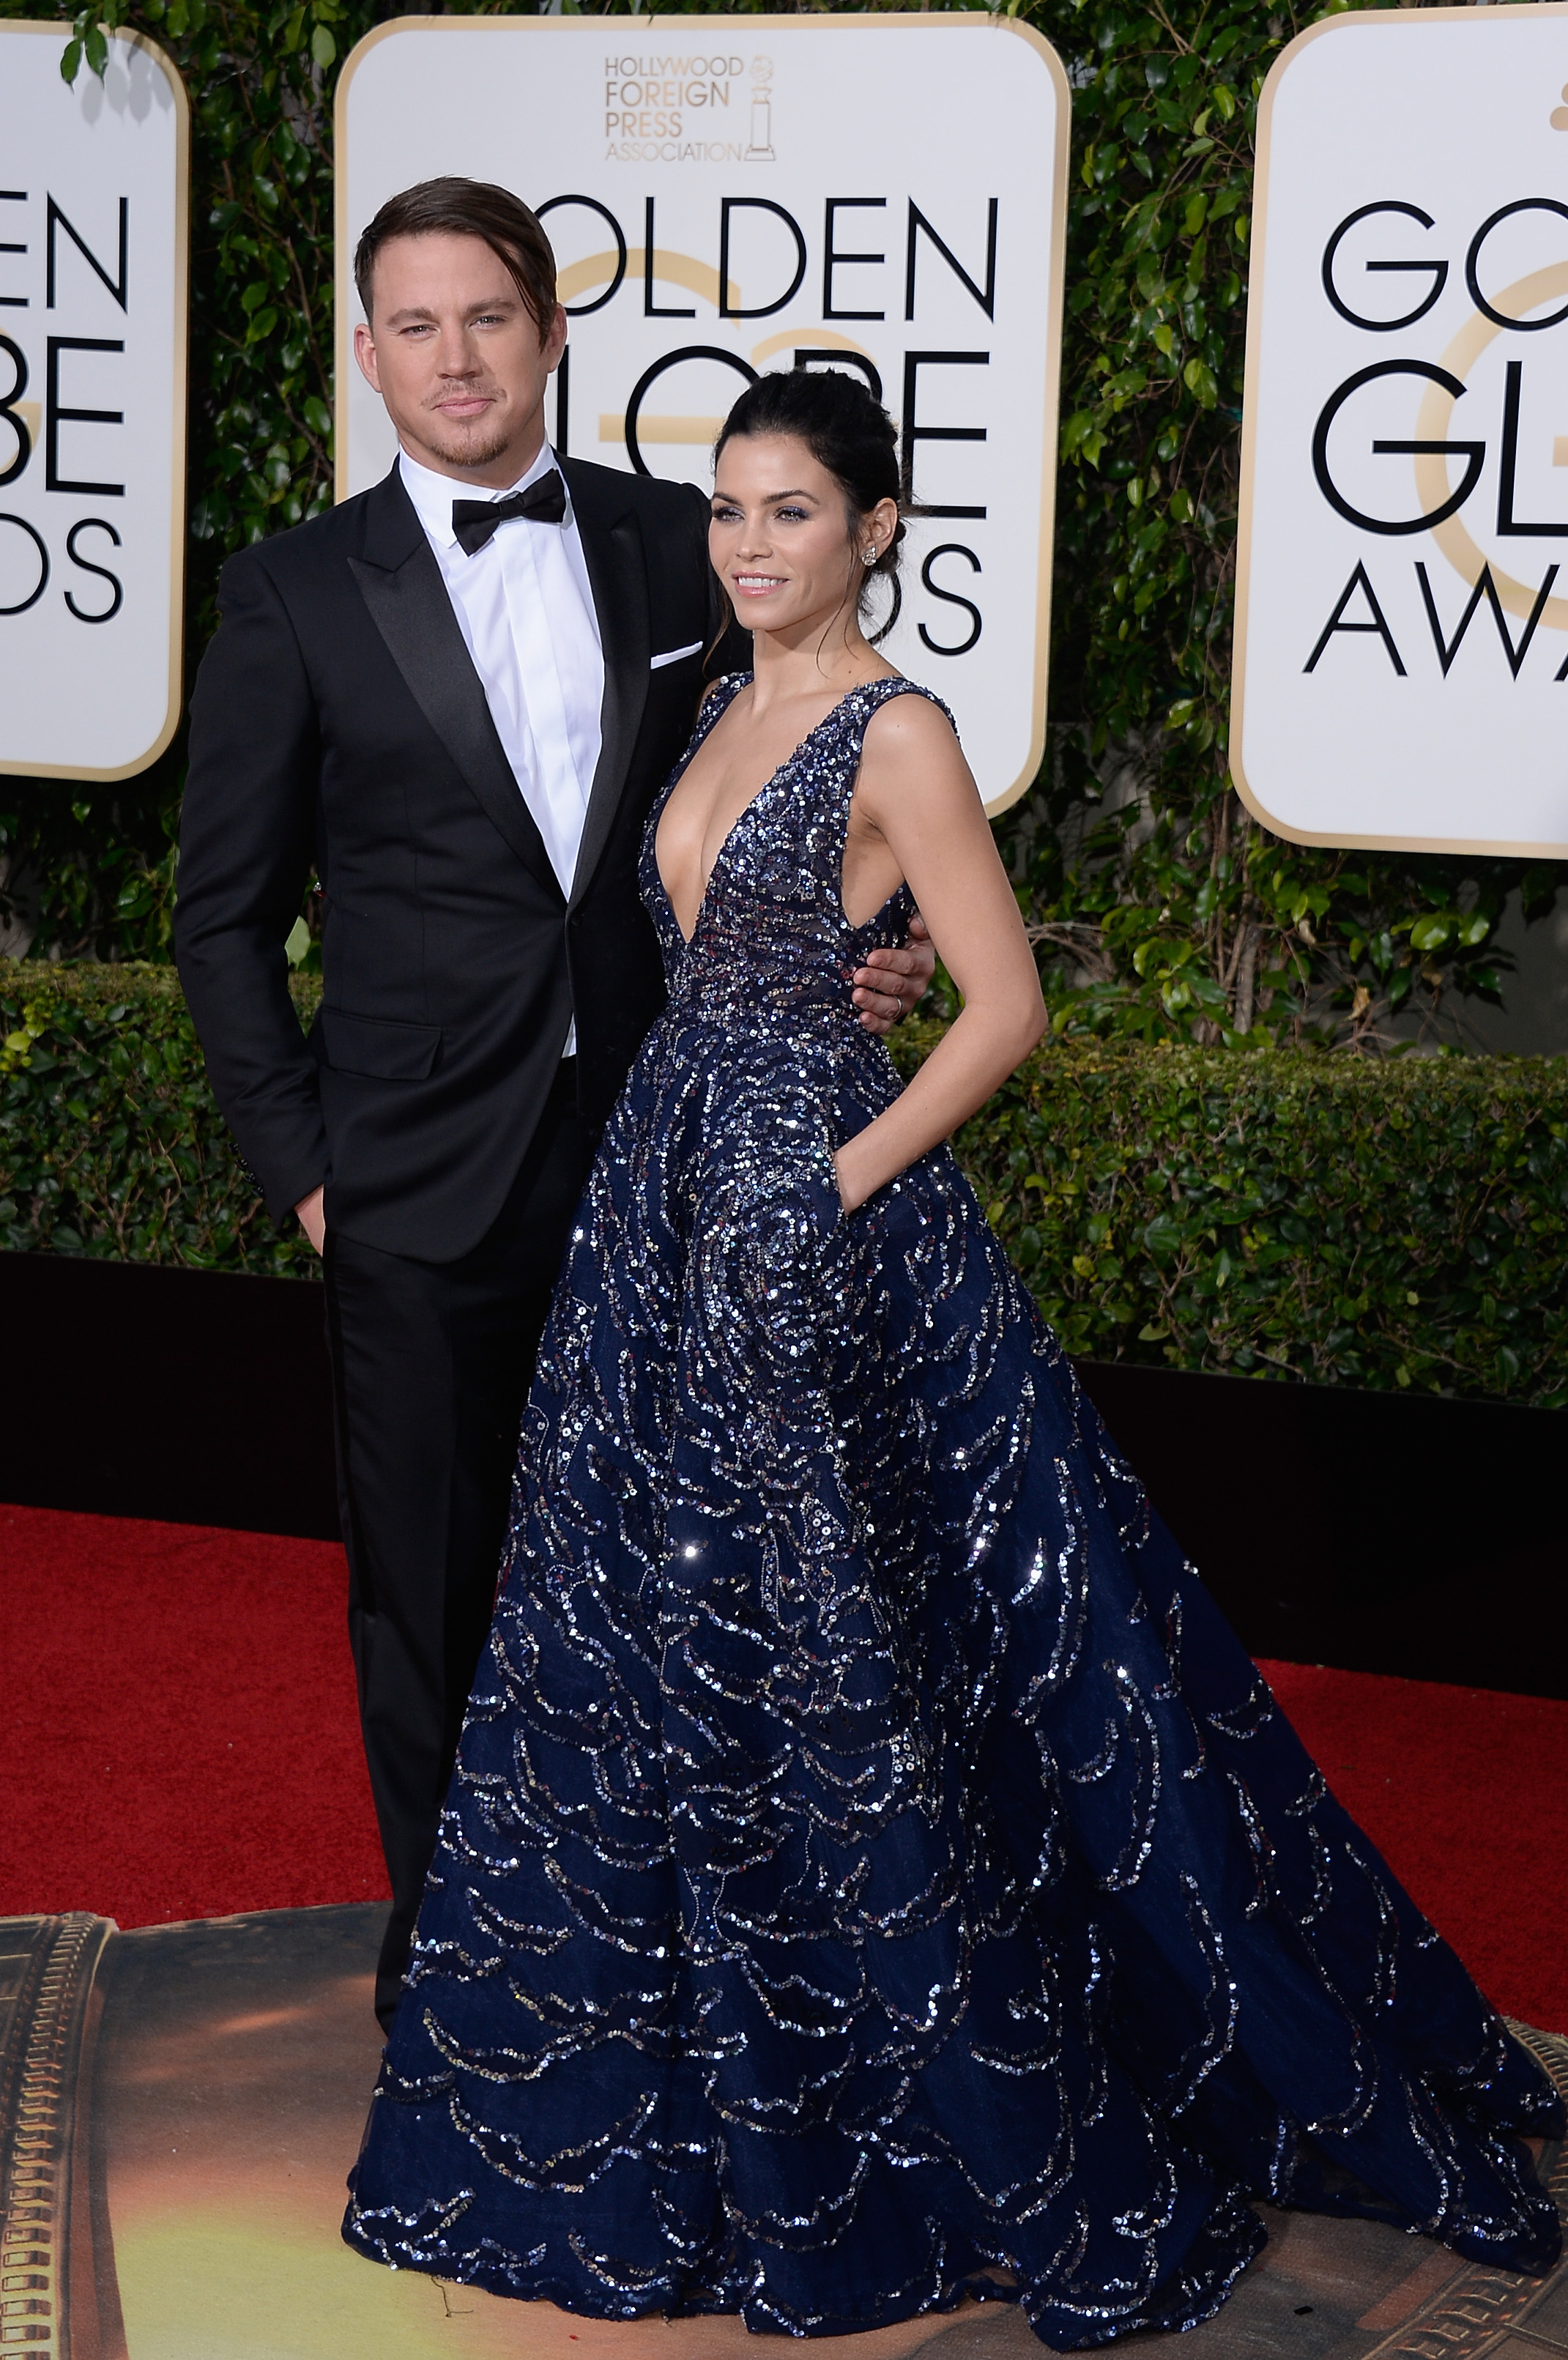 Channing Tatum and Jenna Dewan Tatum arrive to the 73rd Annual Golden Globe Awards on Jan. 10, 2016 in Beverly Hills.